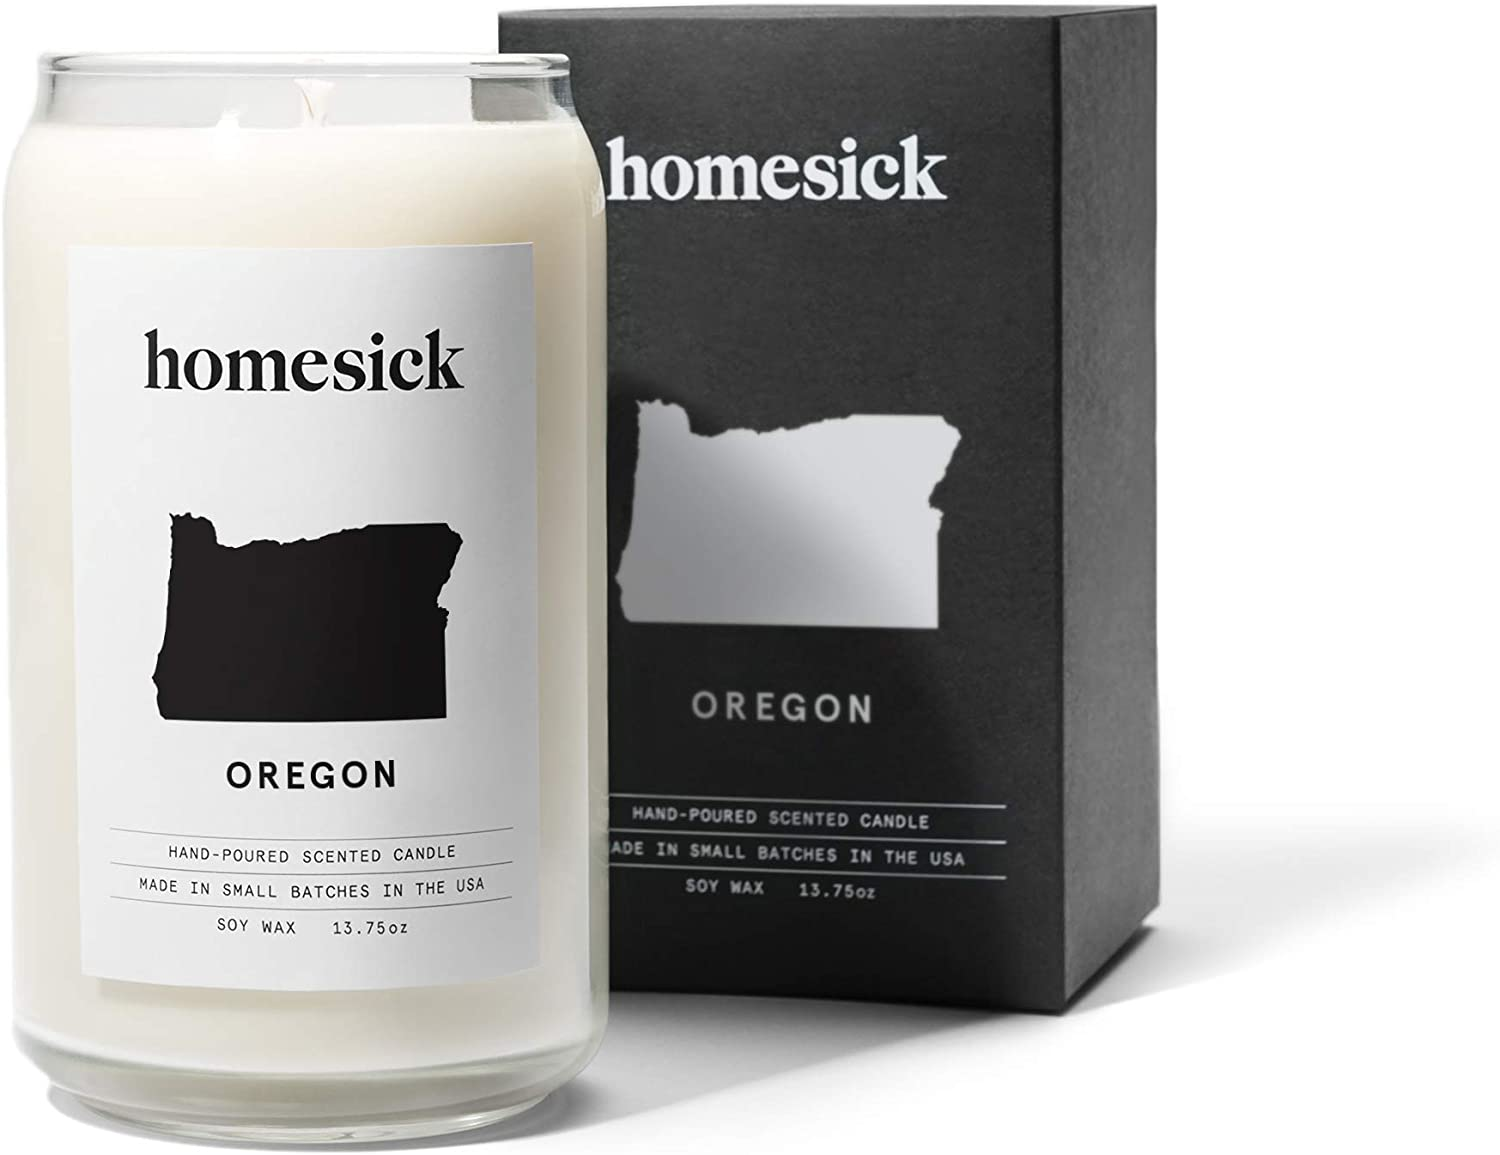 Homesick Scented Candle, Oregon